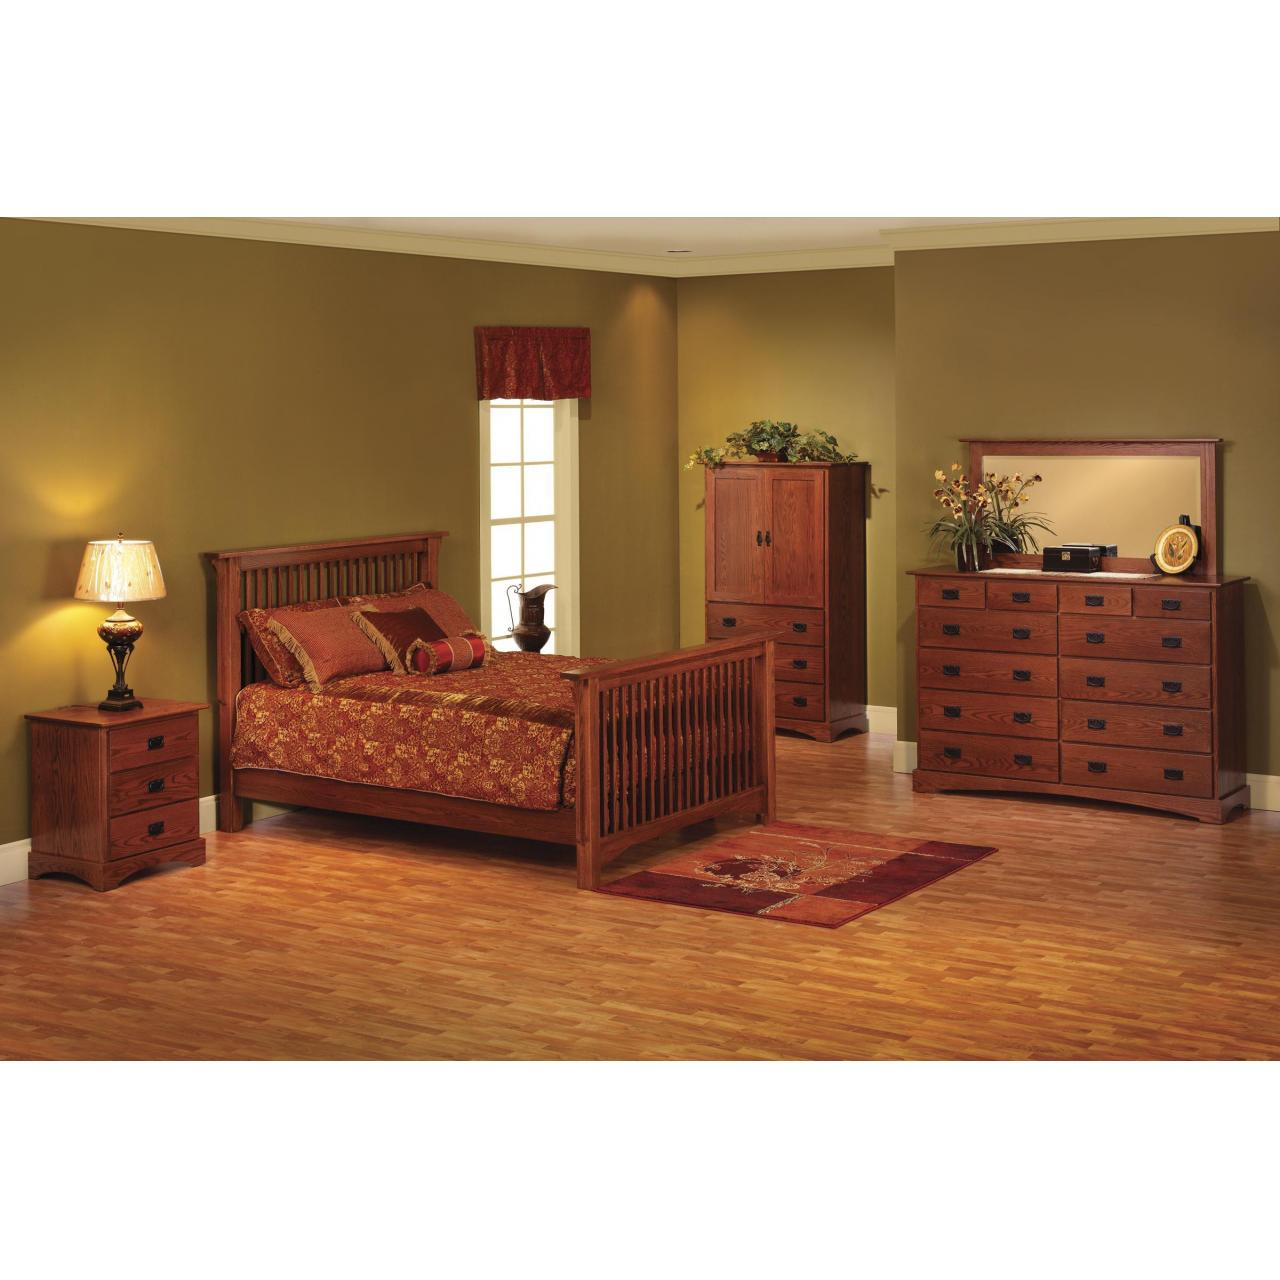 Quality Craftsman Bedroom Furniture for sale